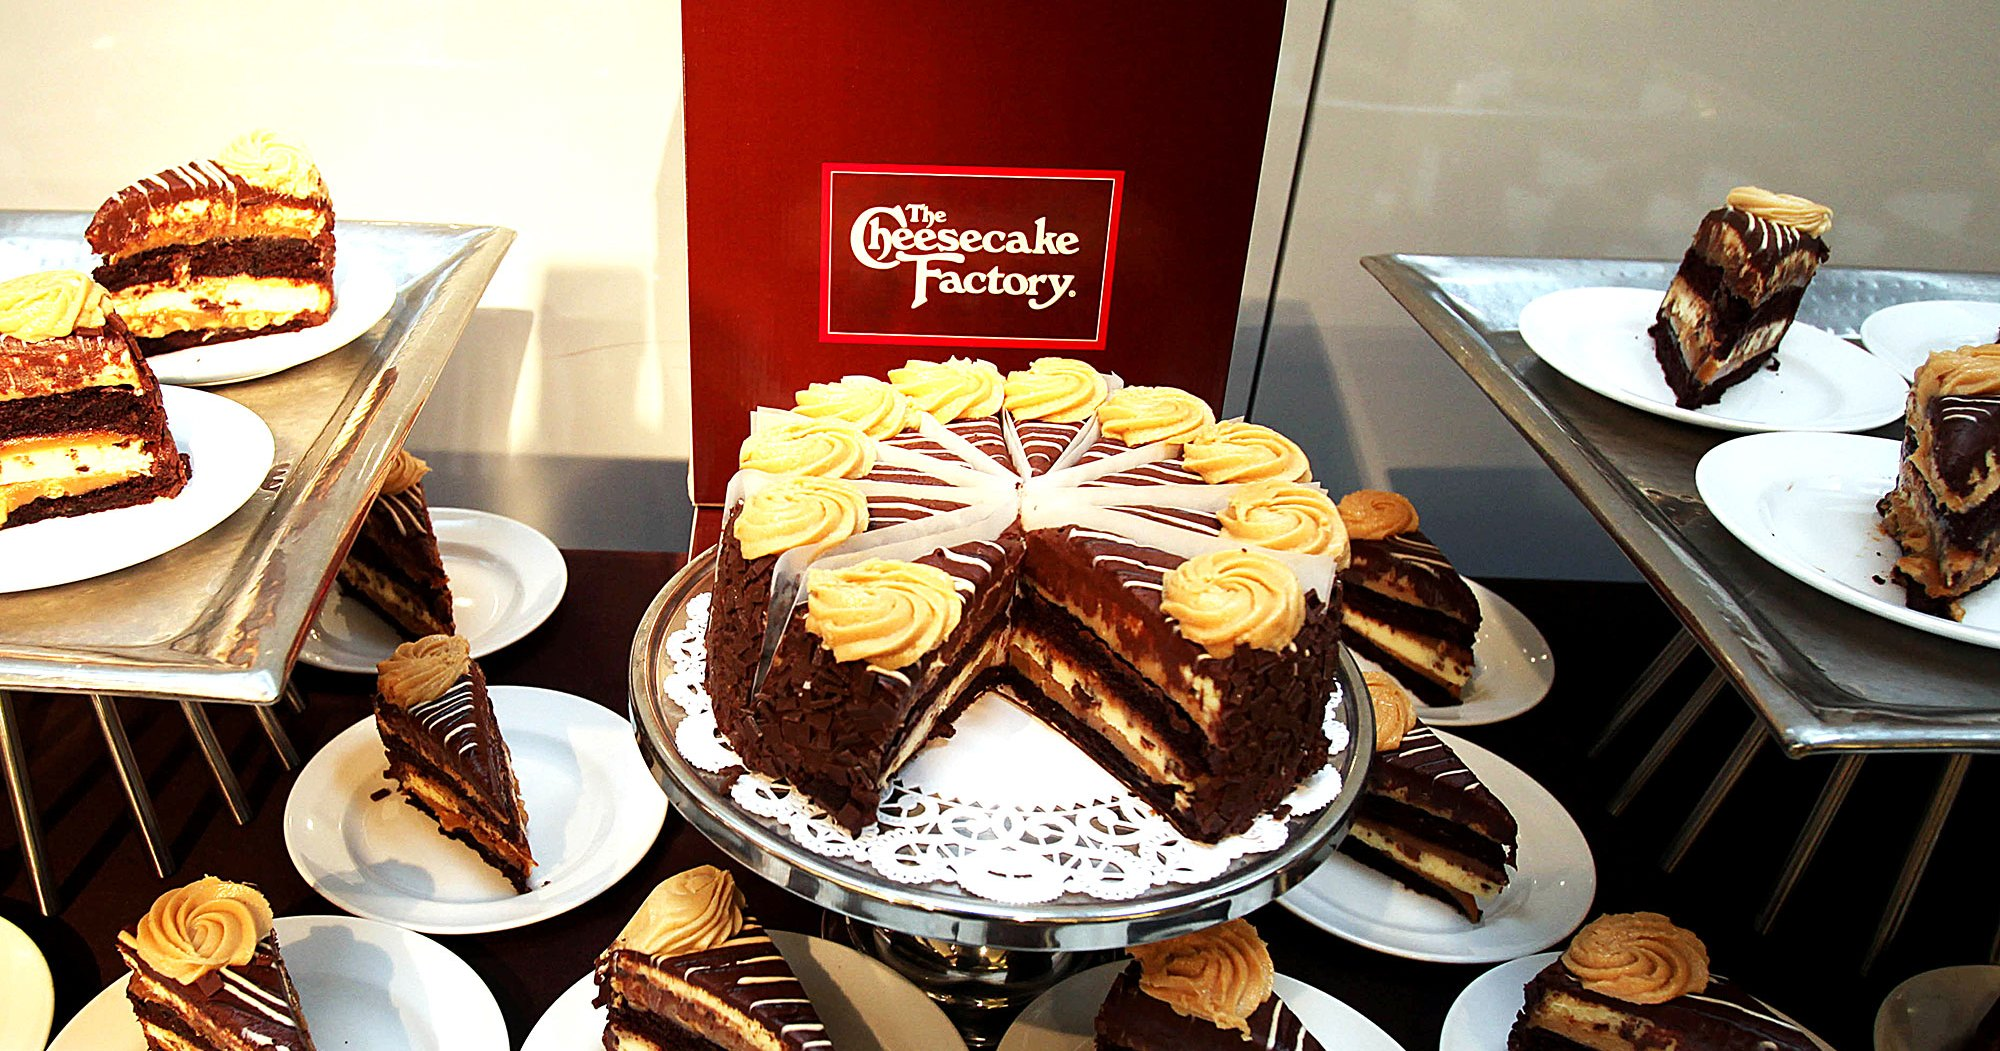 The Cheesecake Factory's Free Cake Promotion Led to an Arrest, Outrage on Twitter